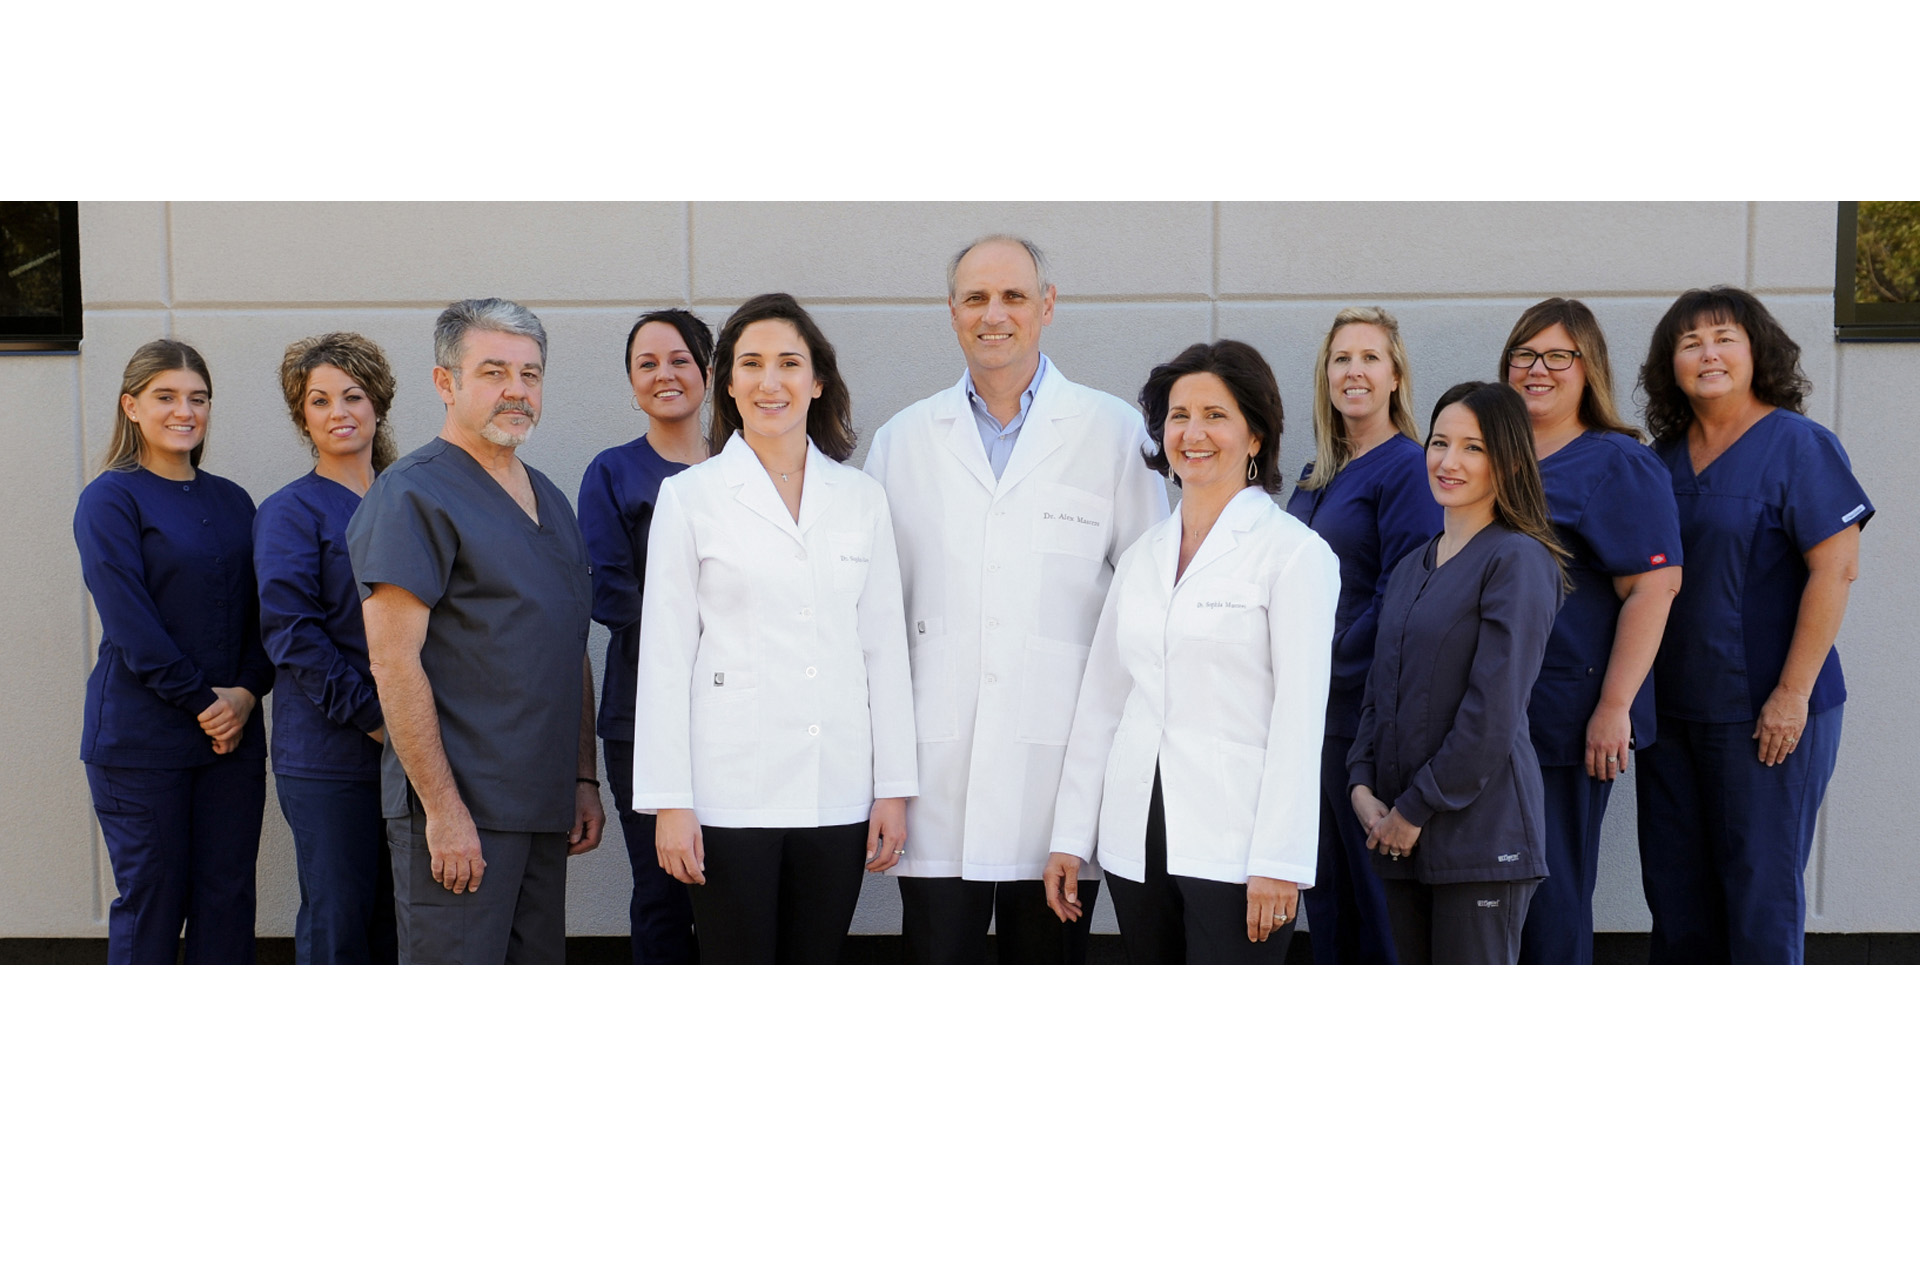 Best Detroit website photographer's style of photographing staff photos for website banners like this dental practice in the metro Detroit, Michigan.